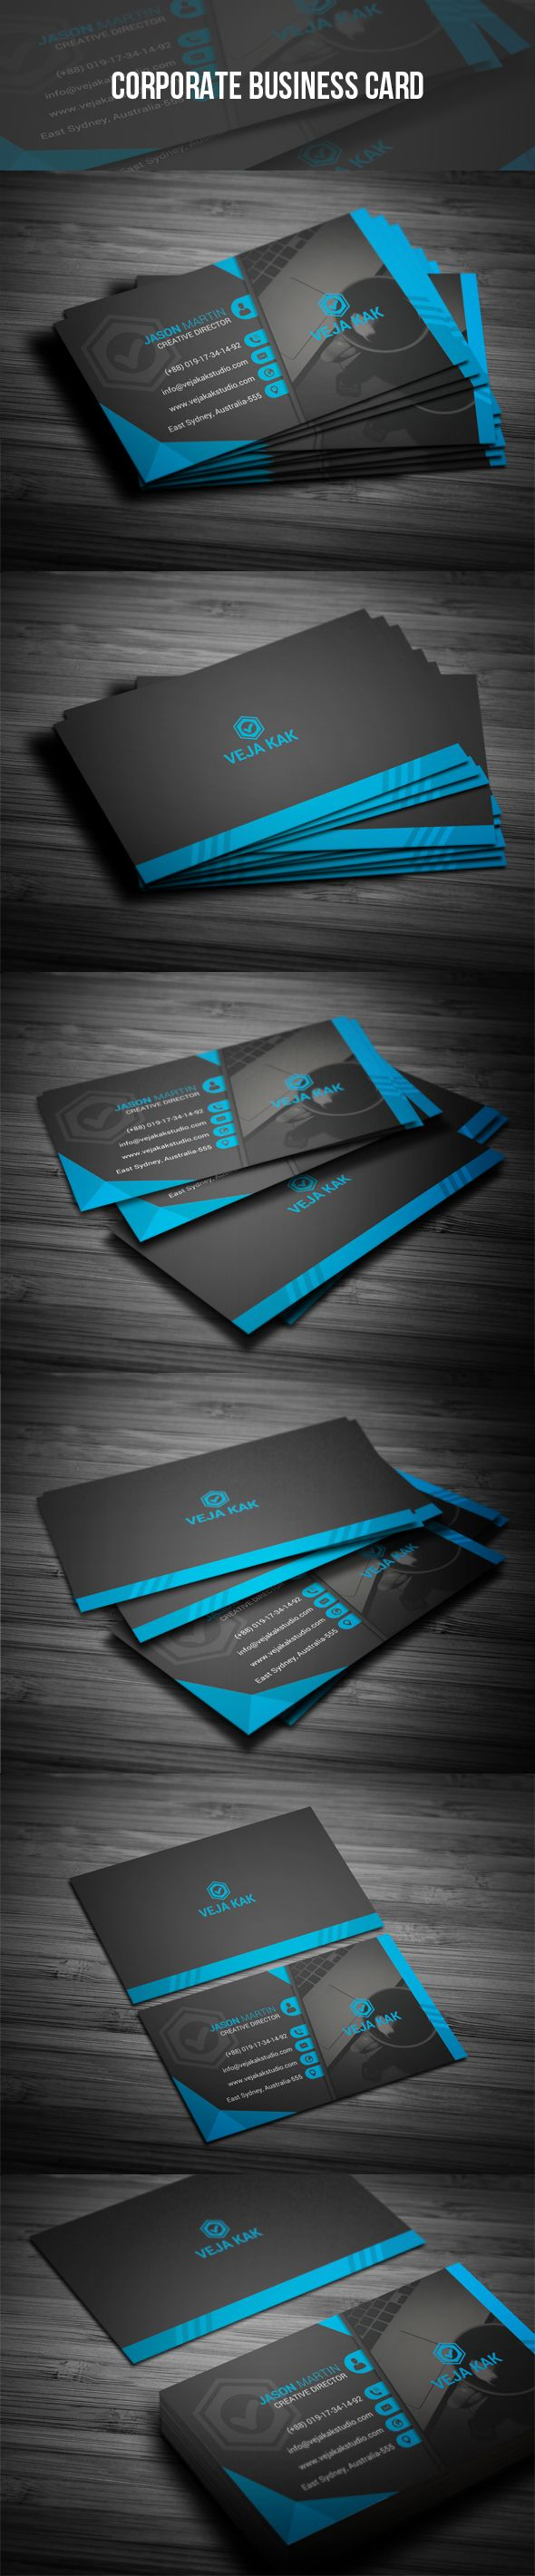 77 best Business Card Designs images on Pinterest | Business card ...